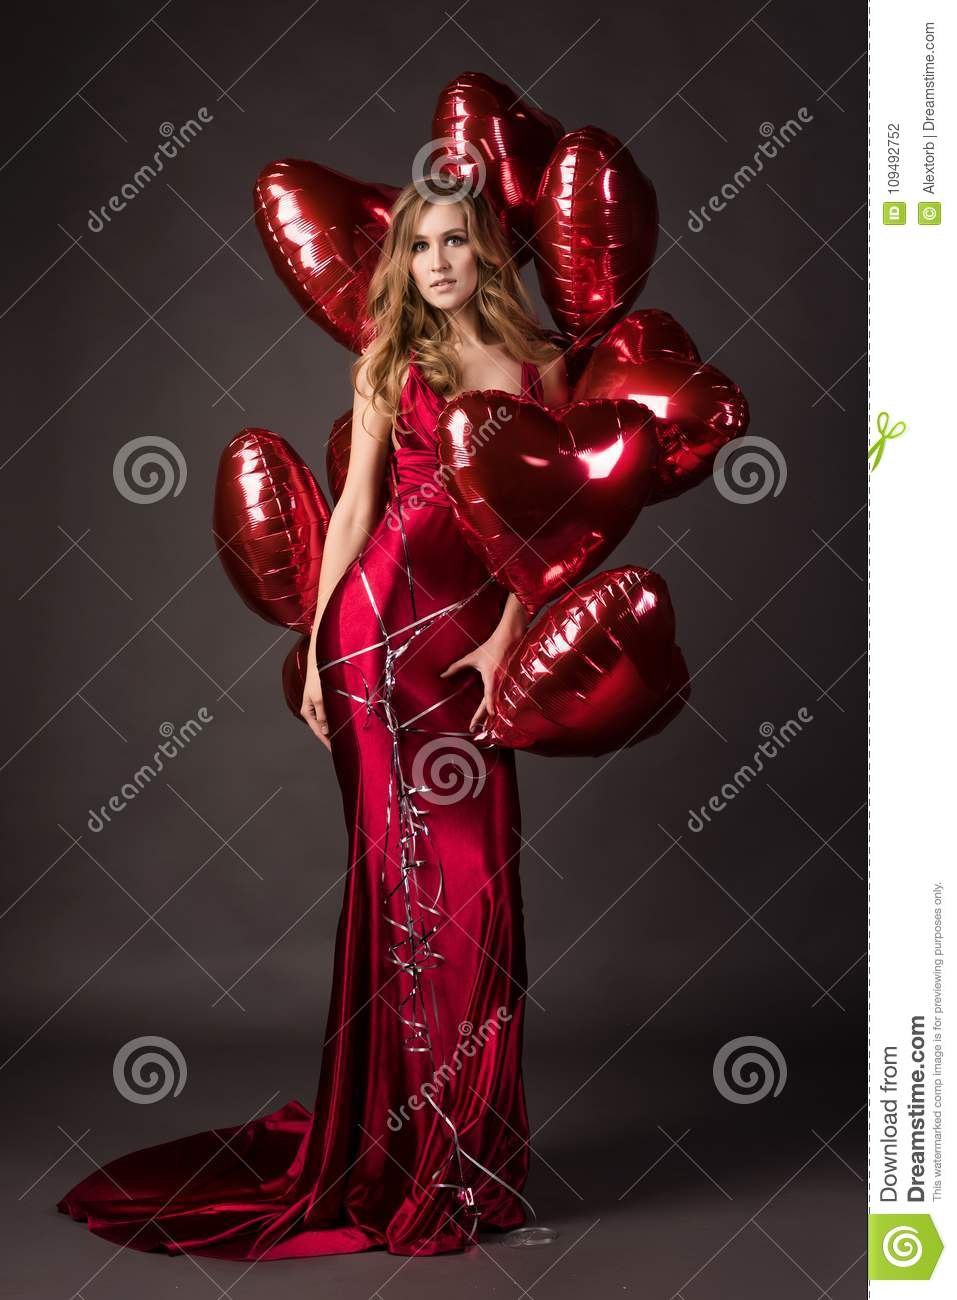 cd32c73b4 Beautiful tall slender blond girl wearing a deep neckline red satin dress  posing with red balloons in the shape of a heart. Valentine`s Day,  holidays, ...